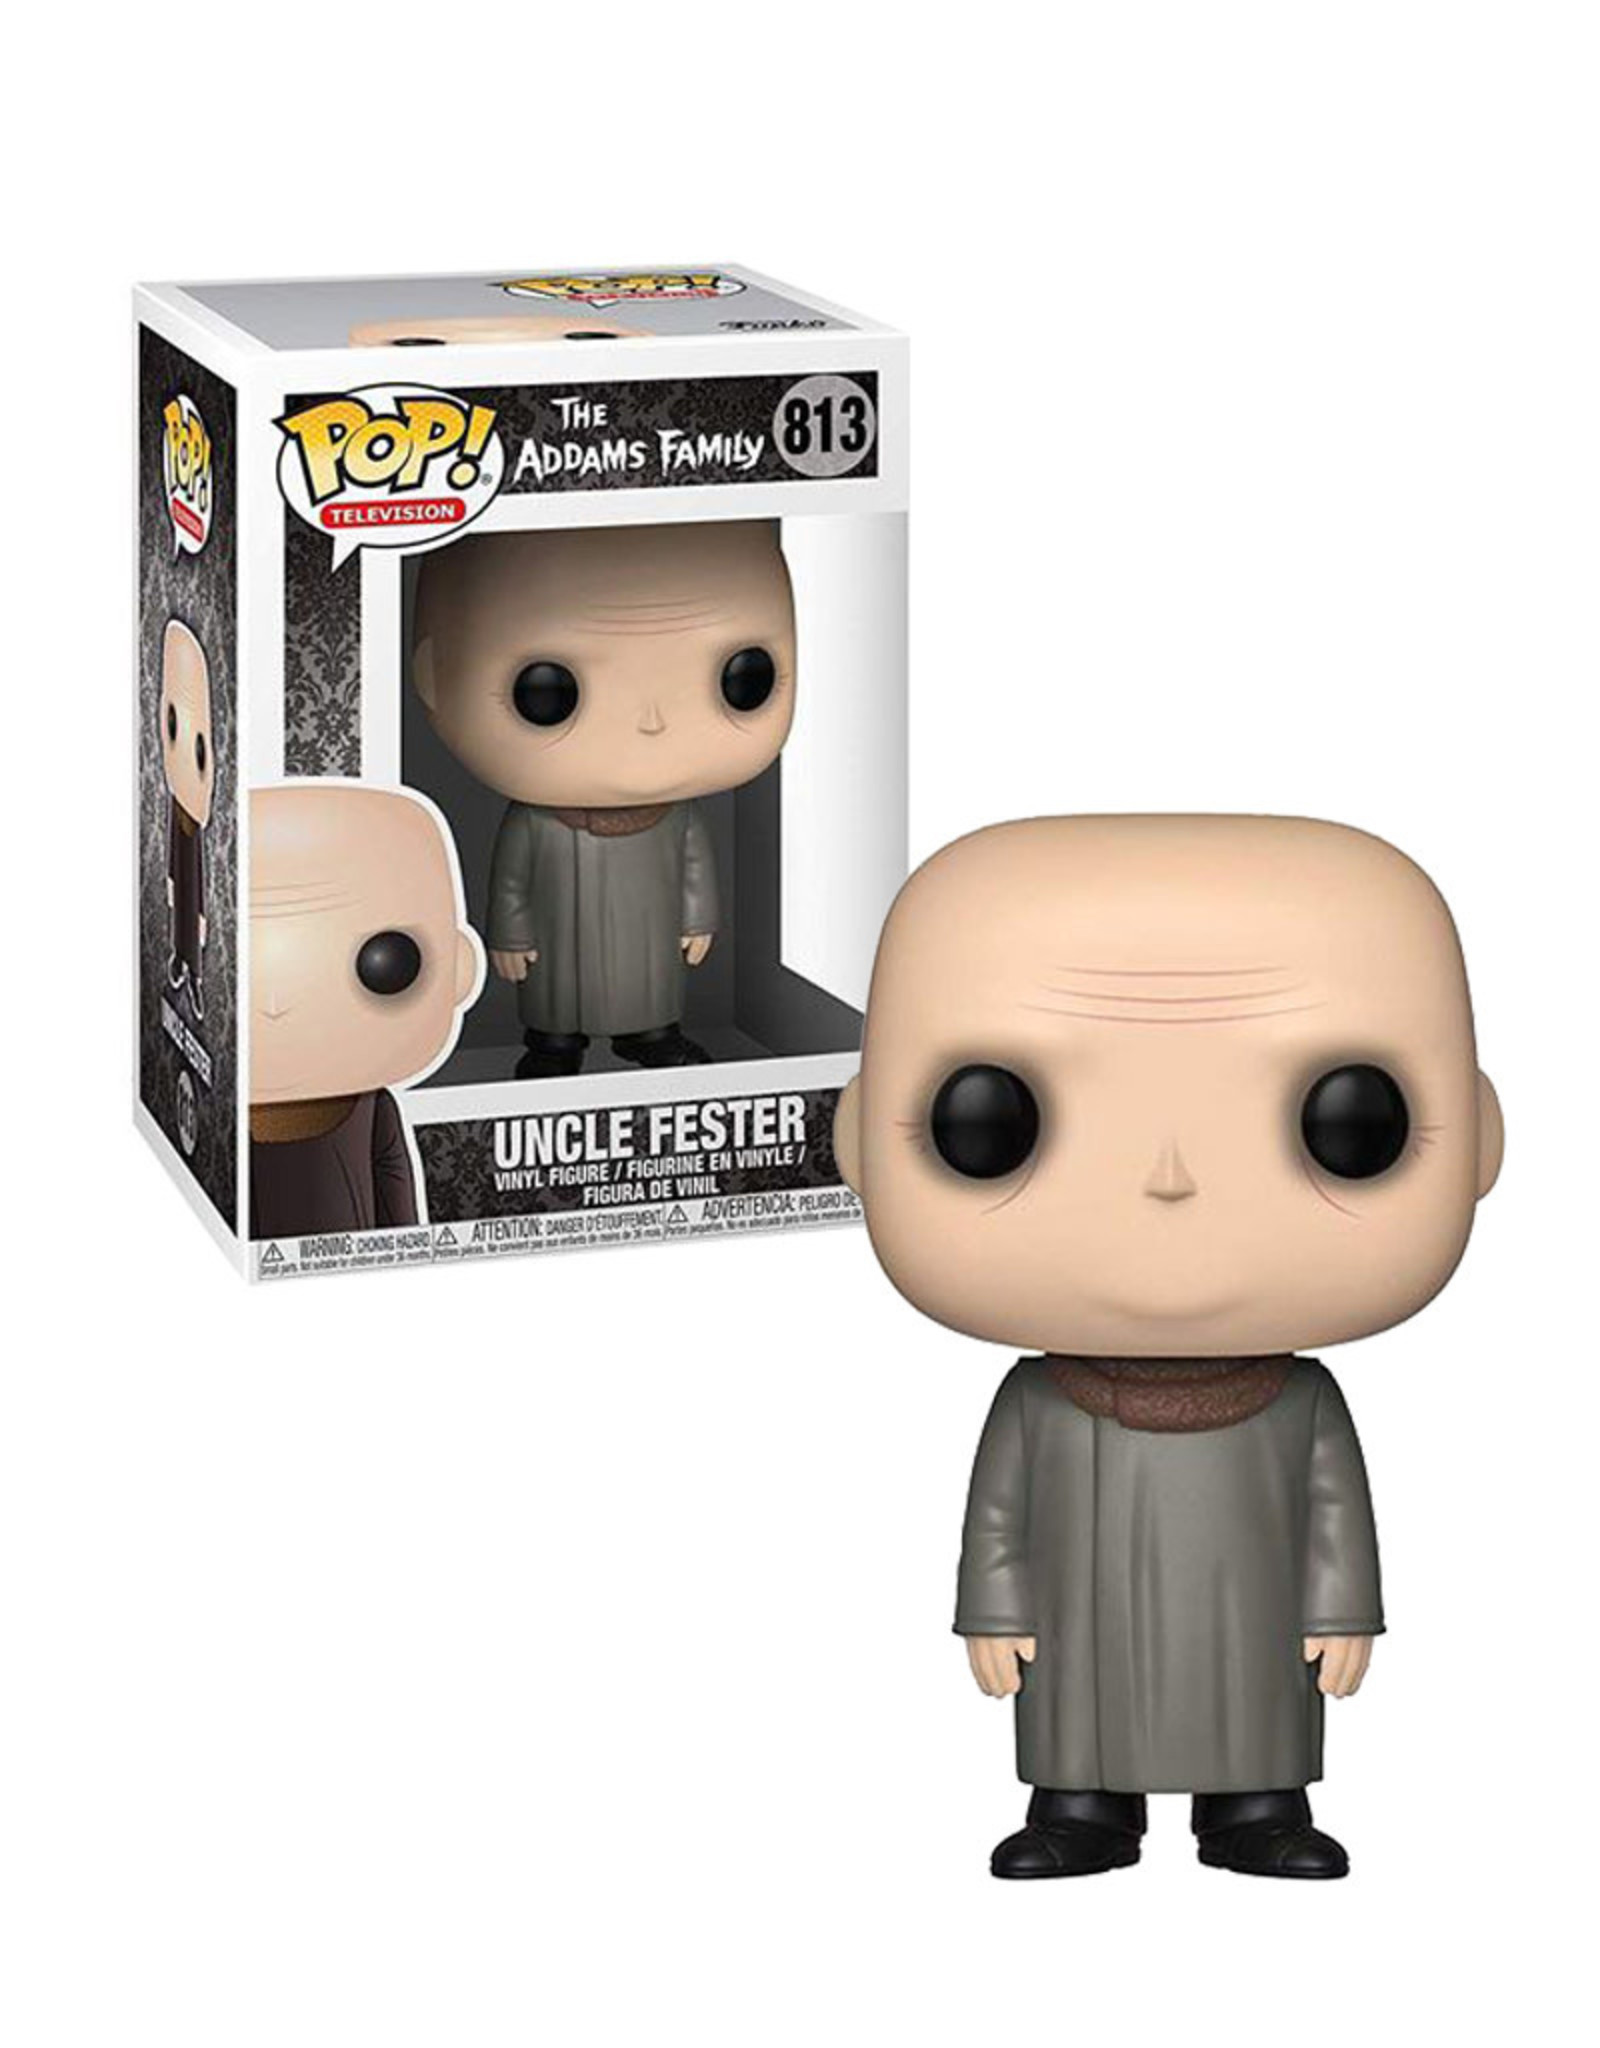 Uncle Fester 813 ( Funko Pop ) The Addams Family